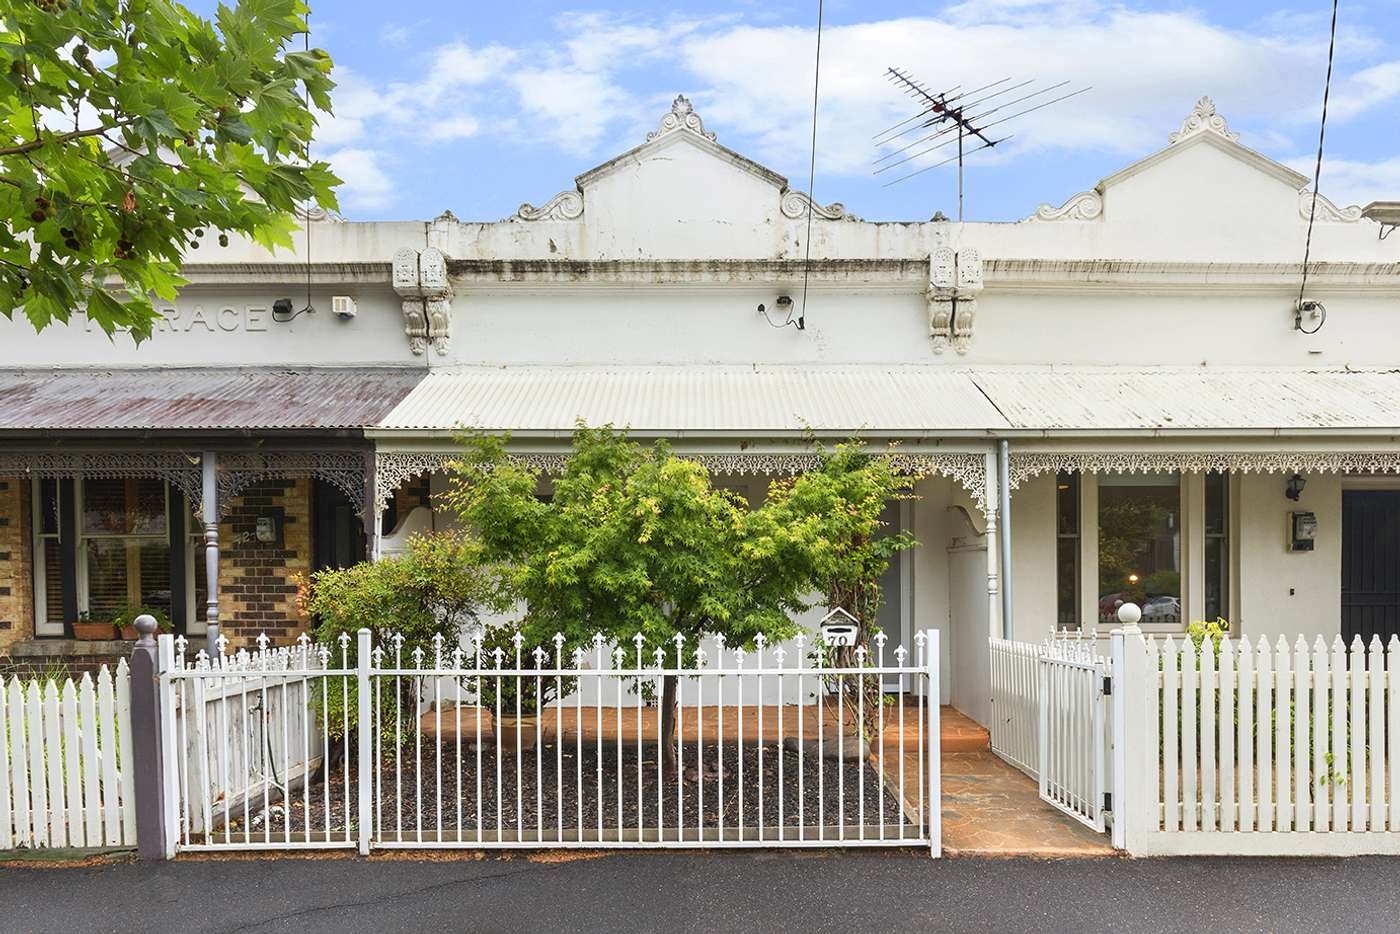 Main view of Homely house listing, 70 Richardson St, Albert Park VIC 3206